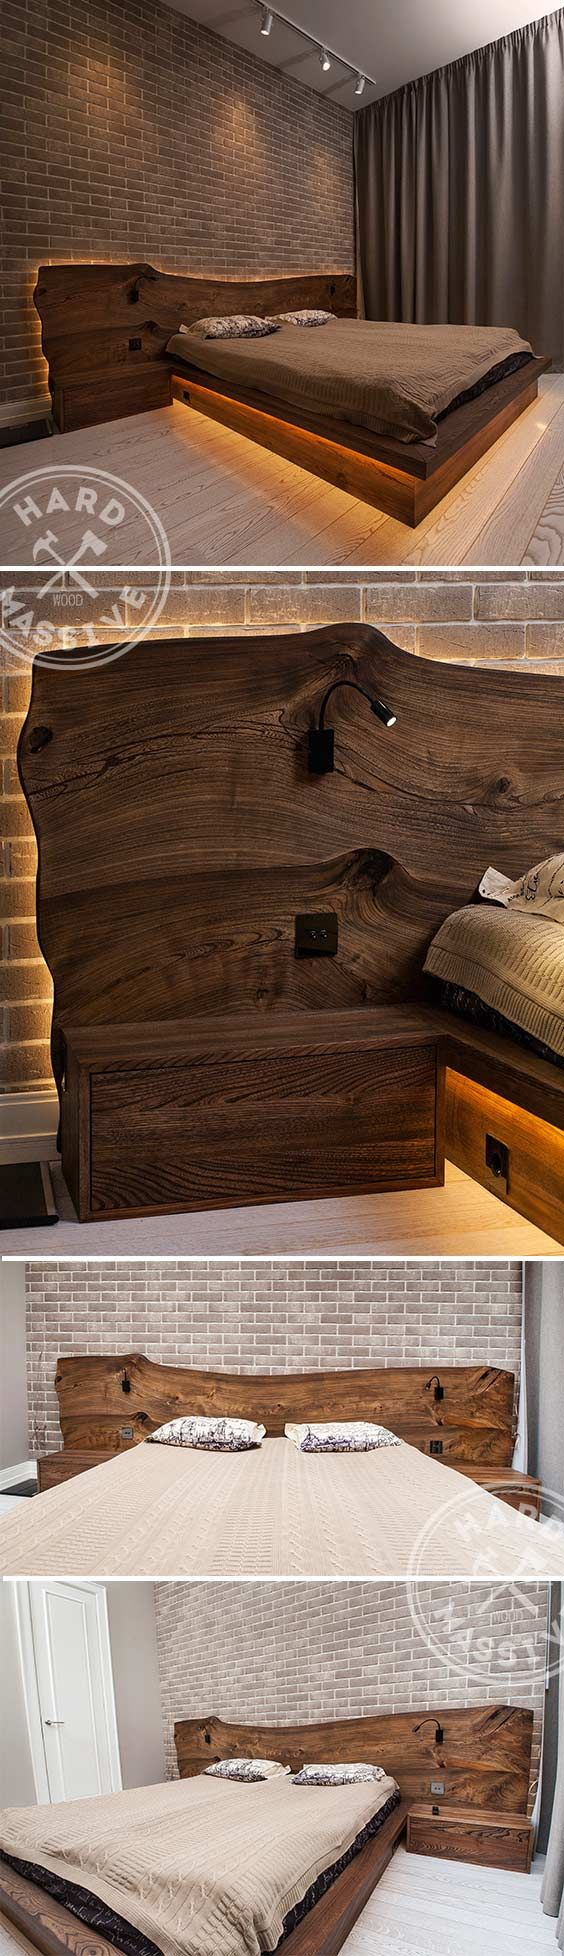 Floating like magic the Riletto nightstands are